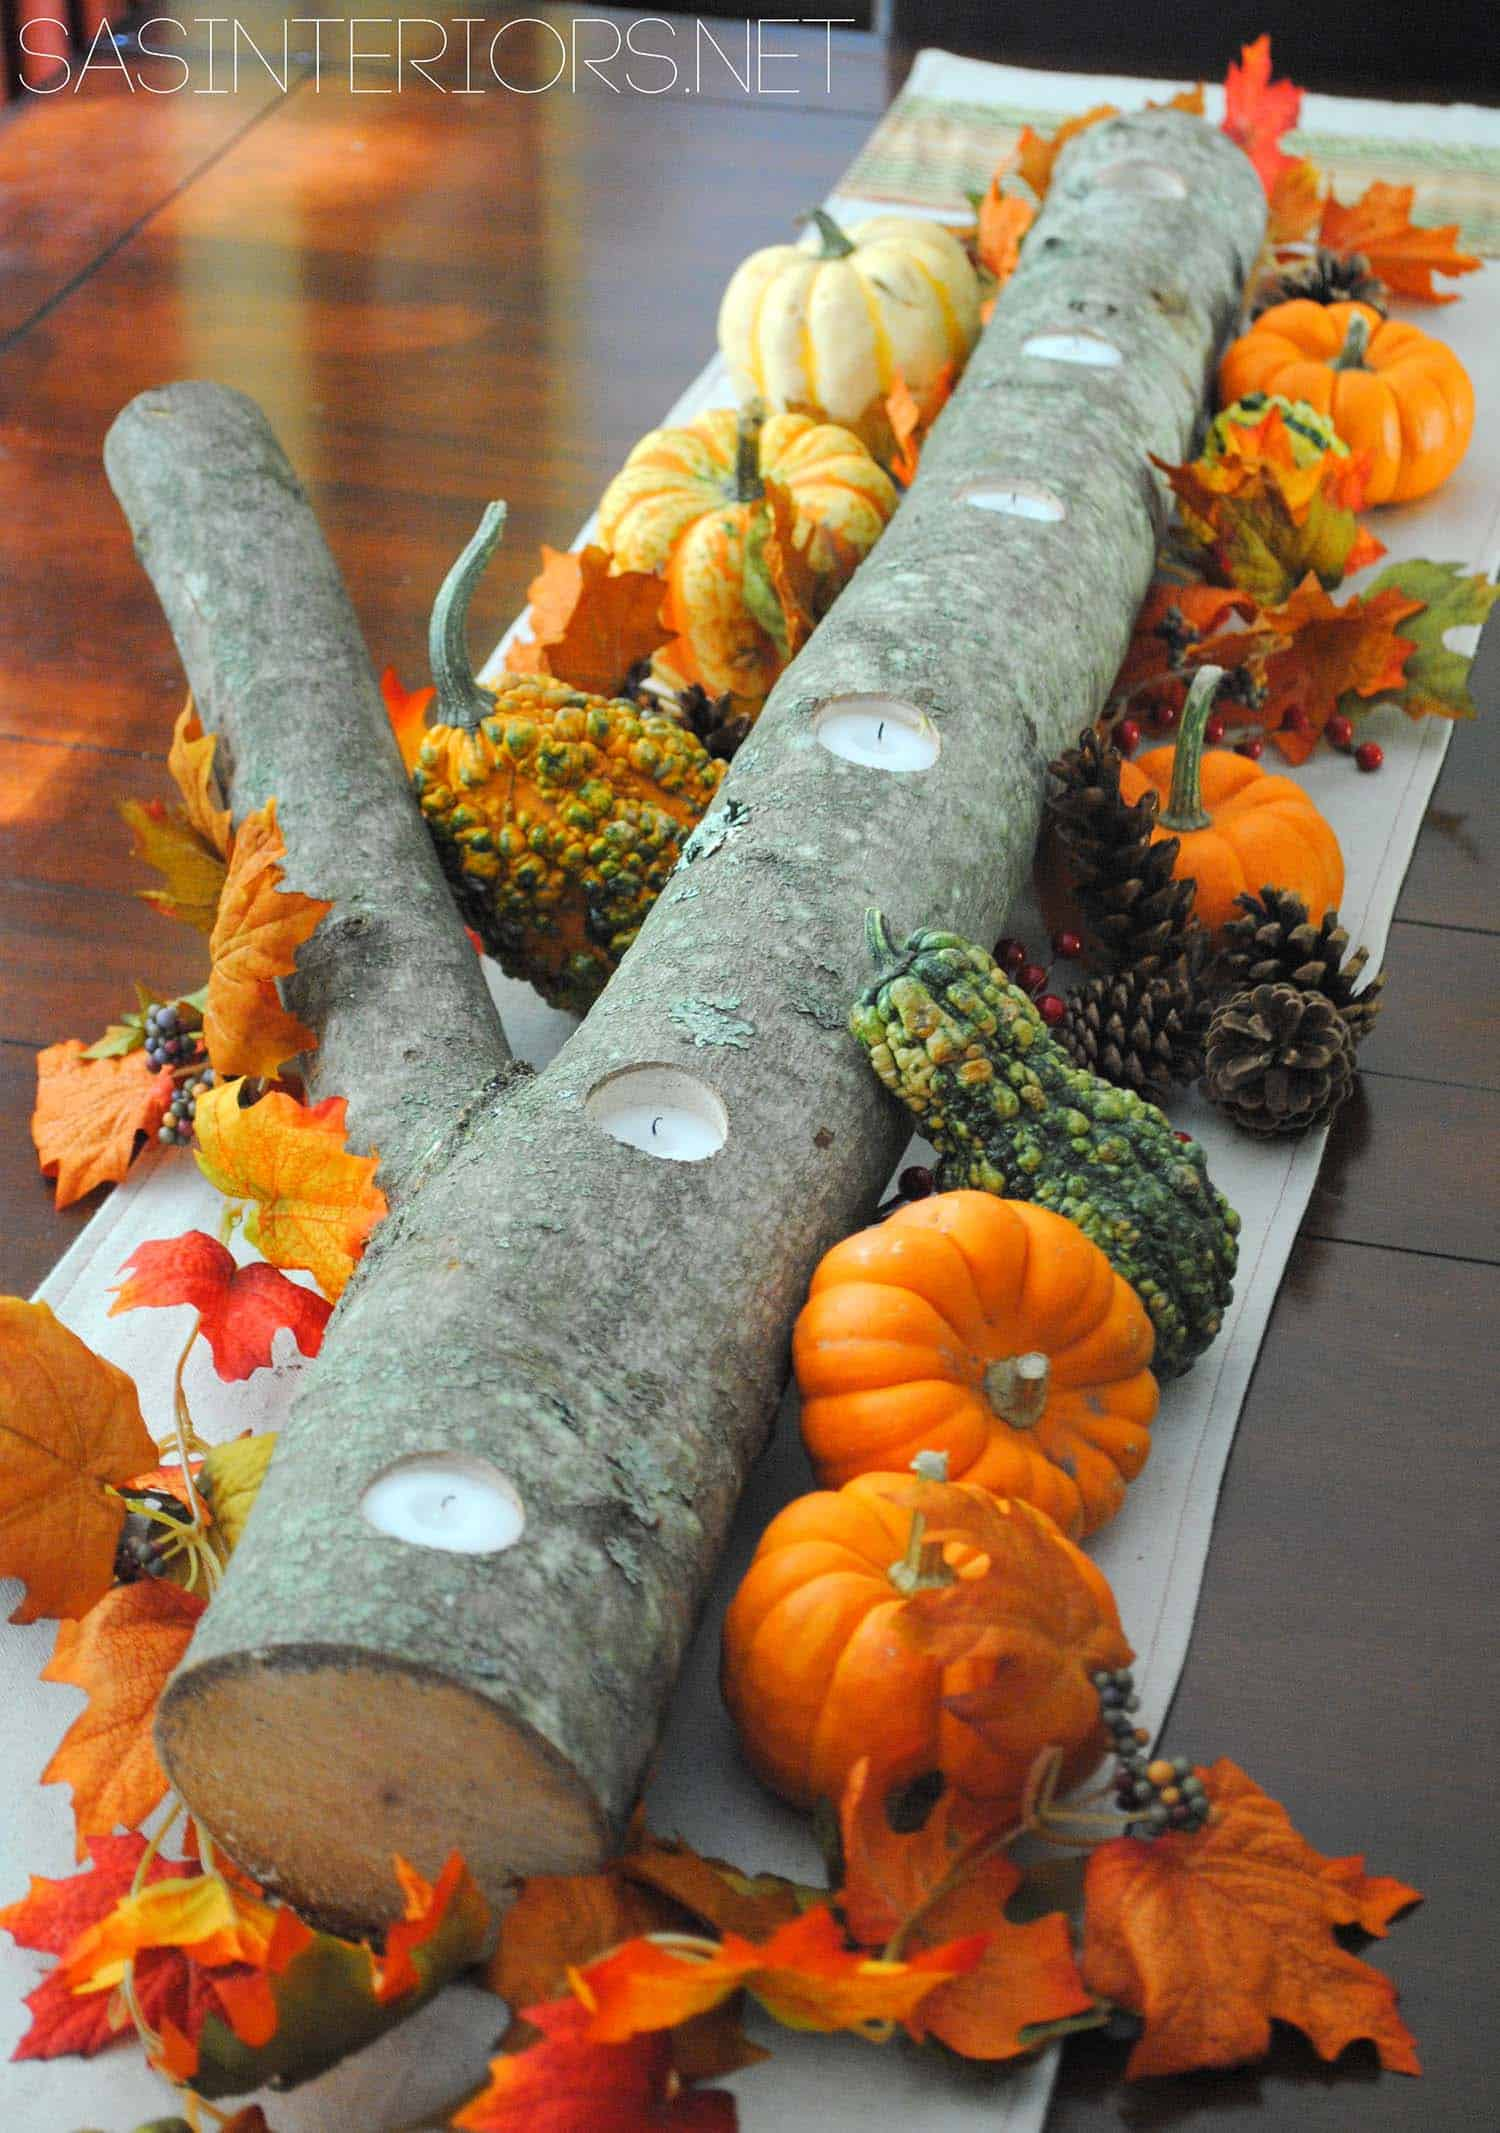 Amazing-Fall-Table-Decor-Ideas-For-Decorating-14-1-Kindesign